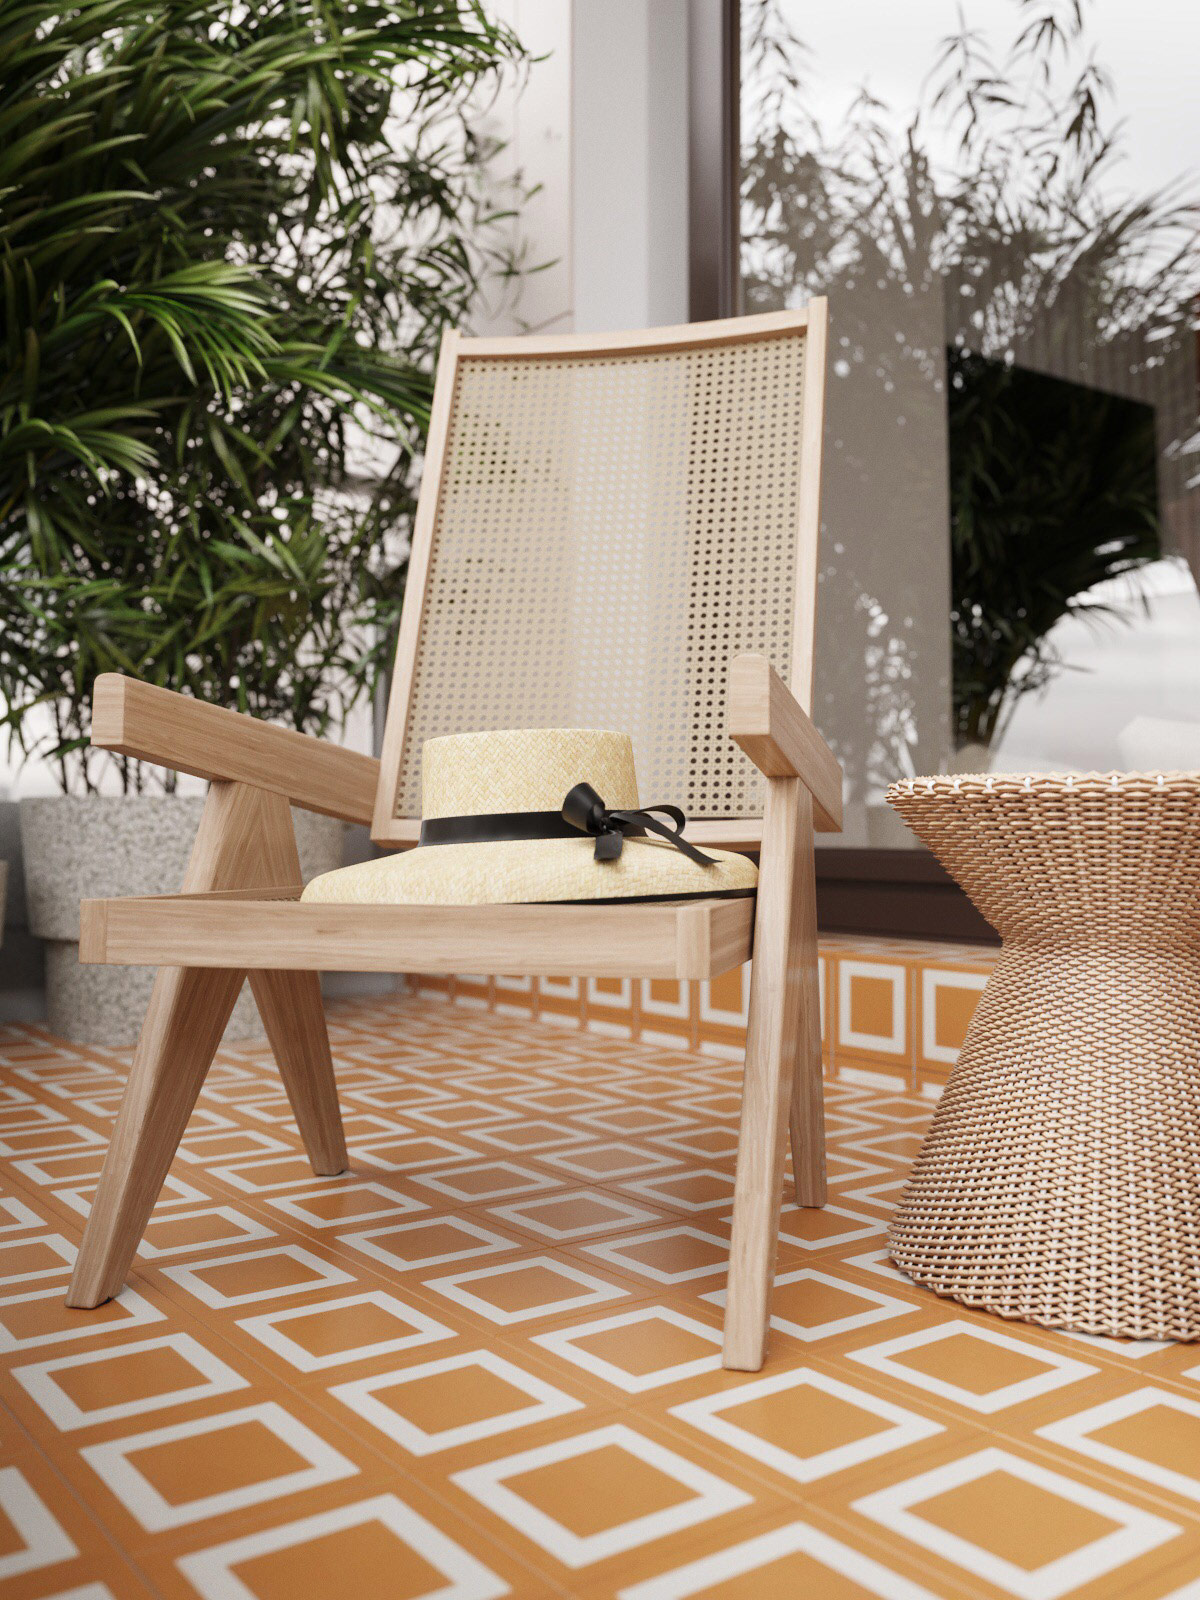 modern-outdoor-chairs-1